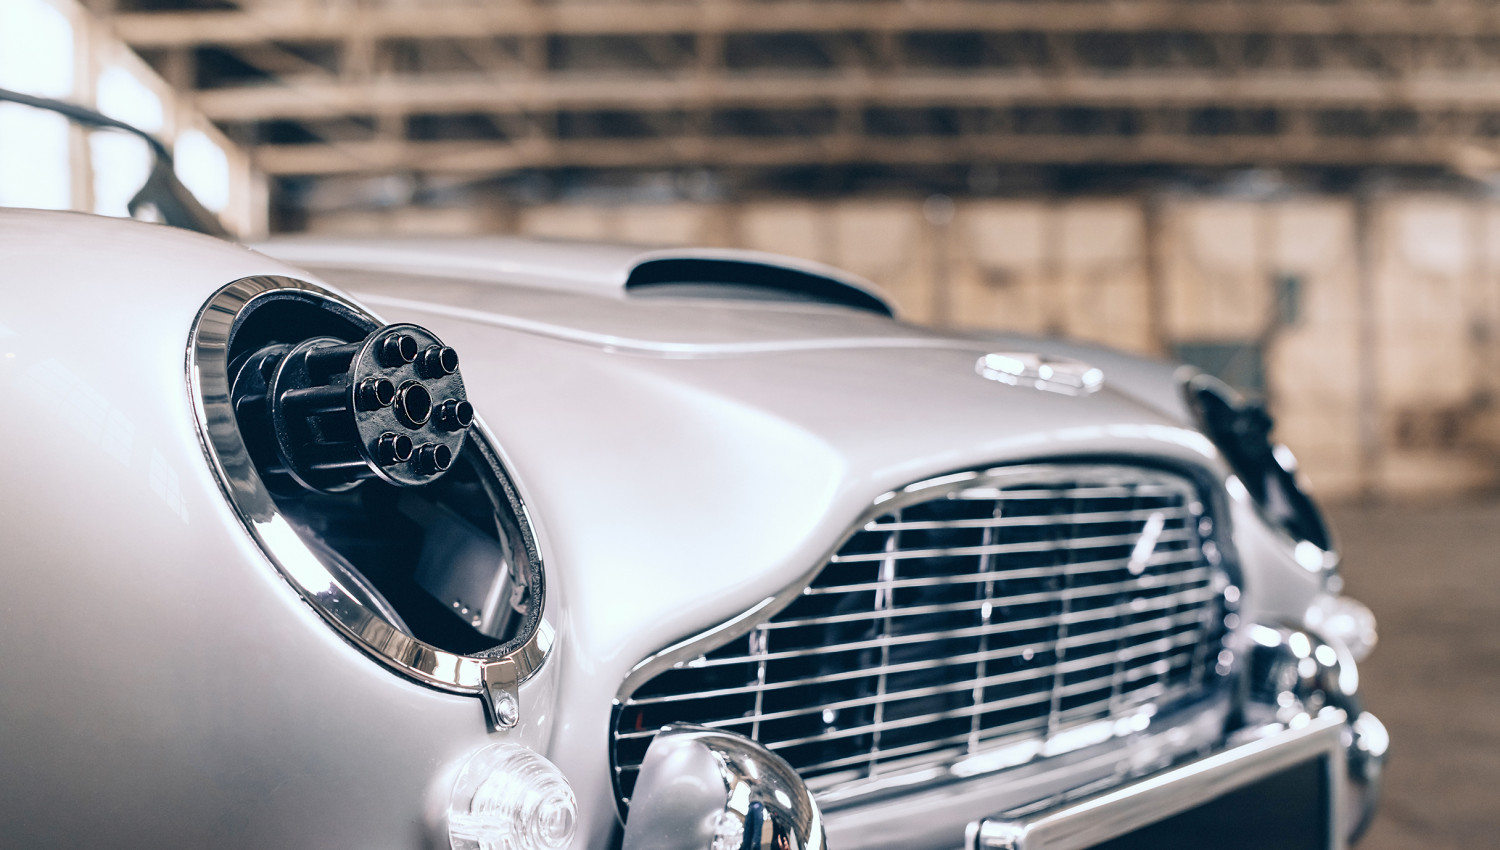 The drop-down headlights of The Little Car Company's Aston Martin toy car features fake spinning machine guns